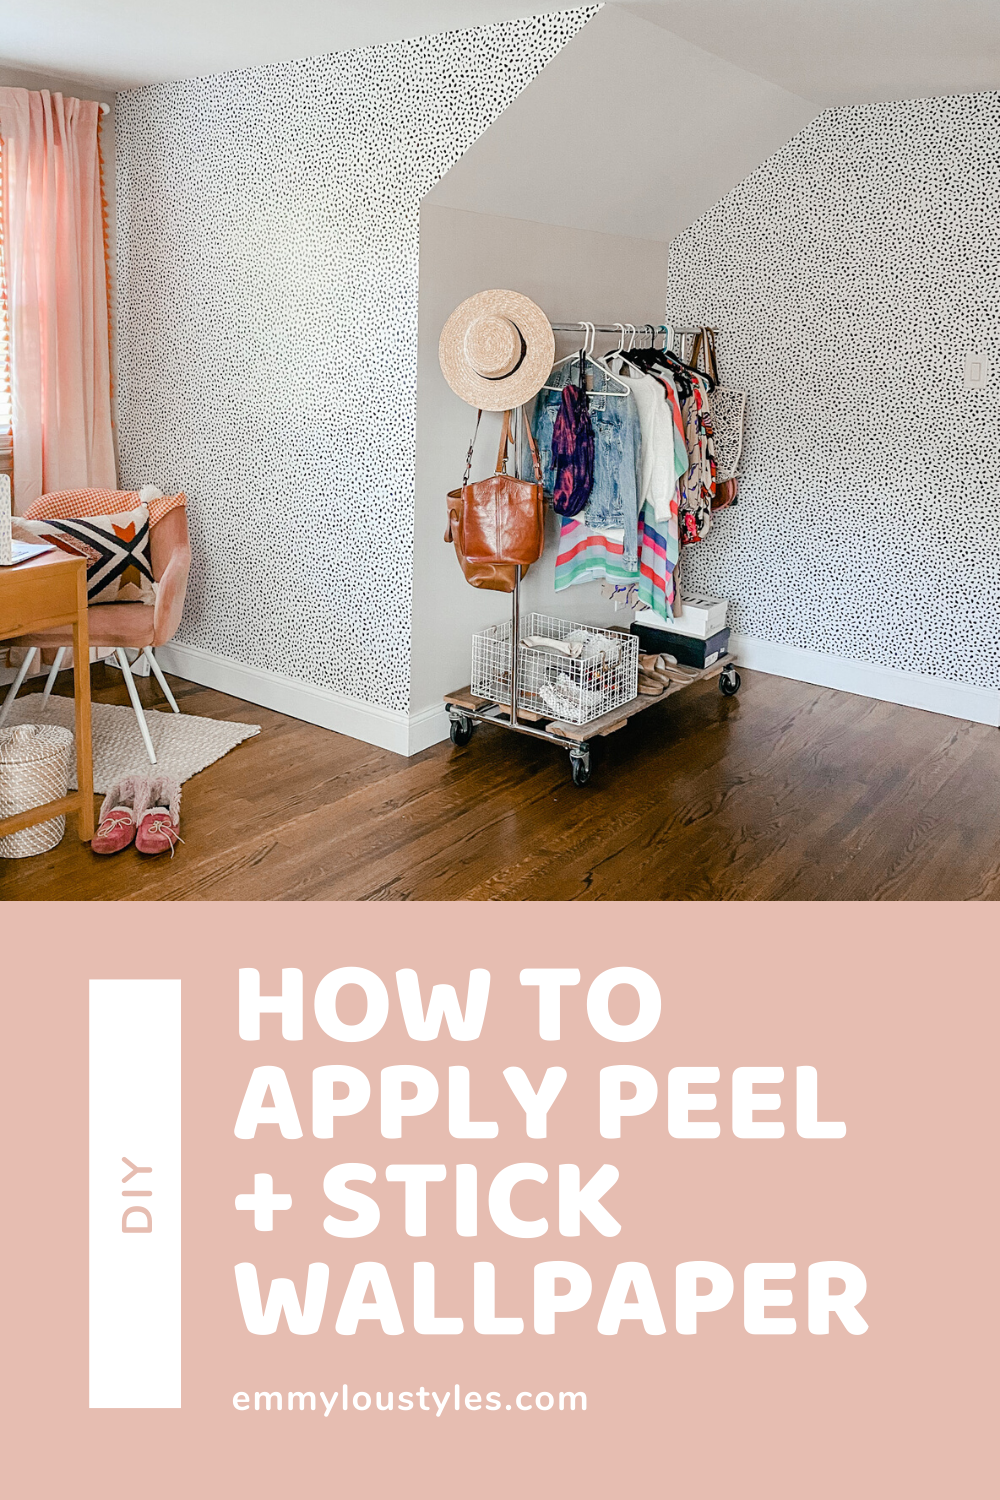 How To Transform Your Space With Peel And Stick Wallpaper Emmy Lou Styles Peel And Stick Wallpaper Fun Diy Projects For Home Your Space